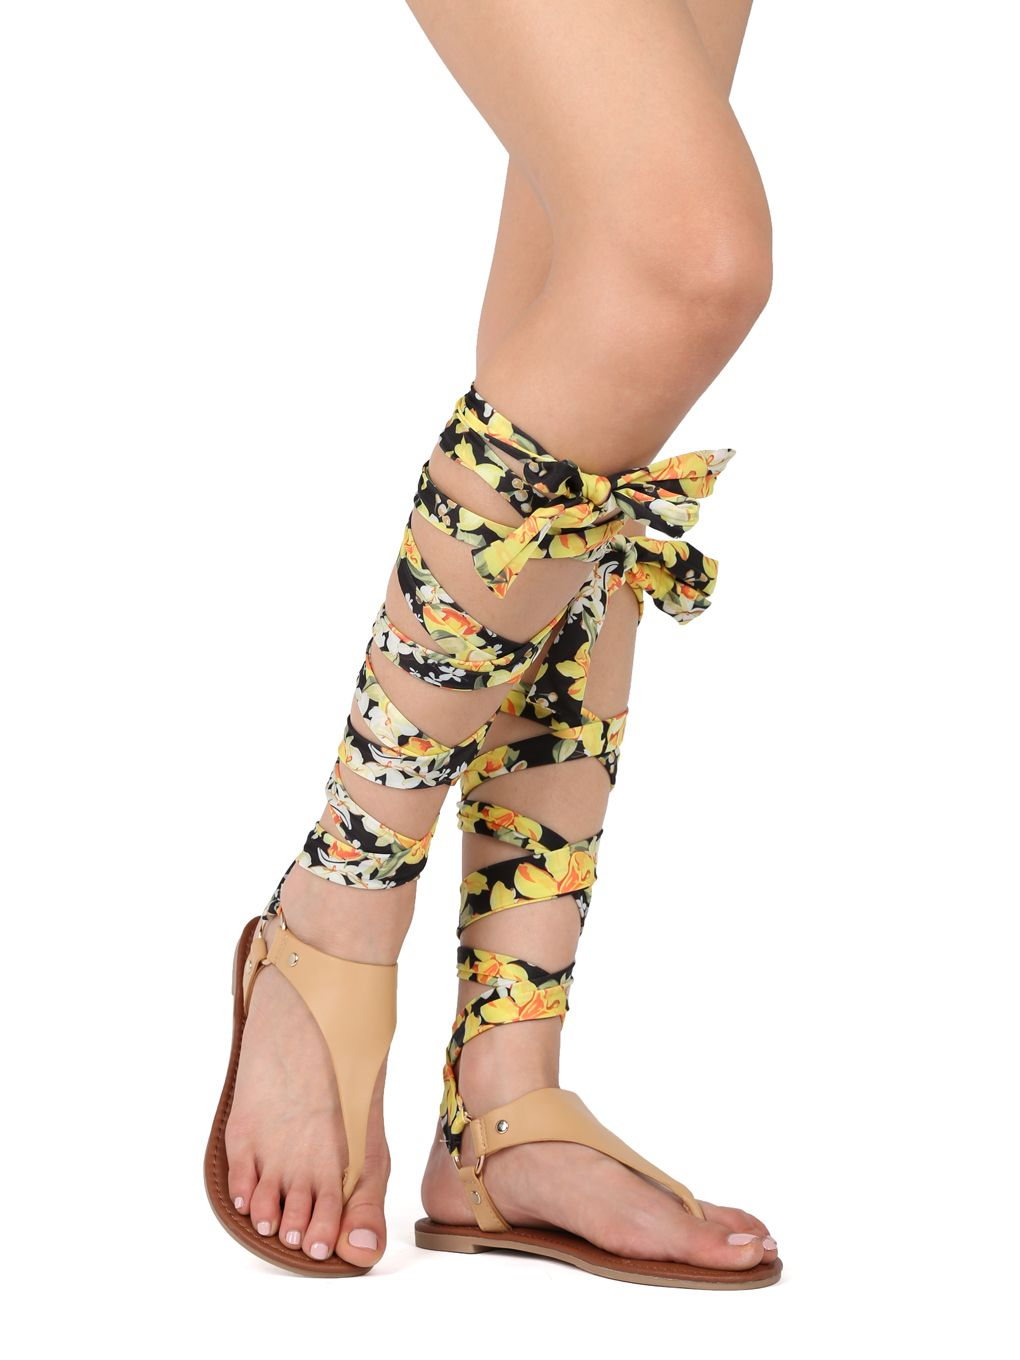 111ed9ee4 Shoes Women Leatherette Thong Construction Floral Ankle Wrap Gladiator Flat  Sandal